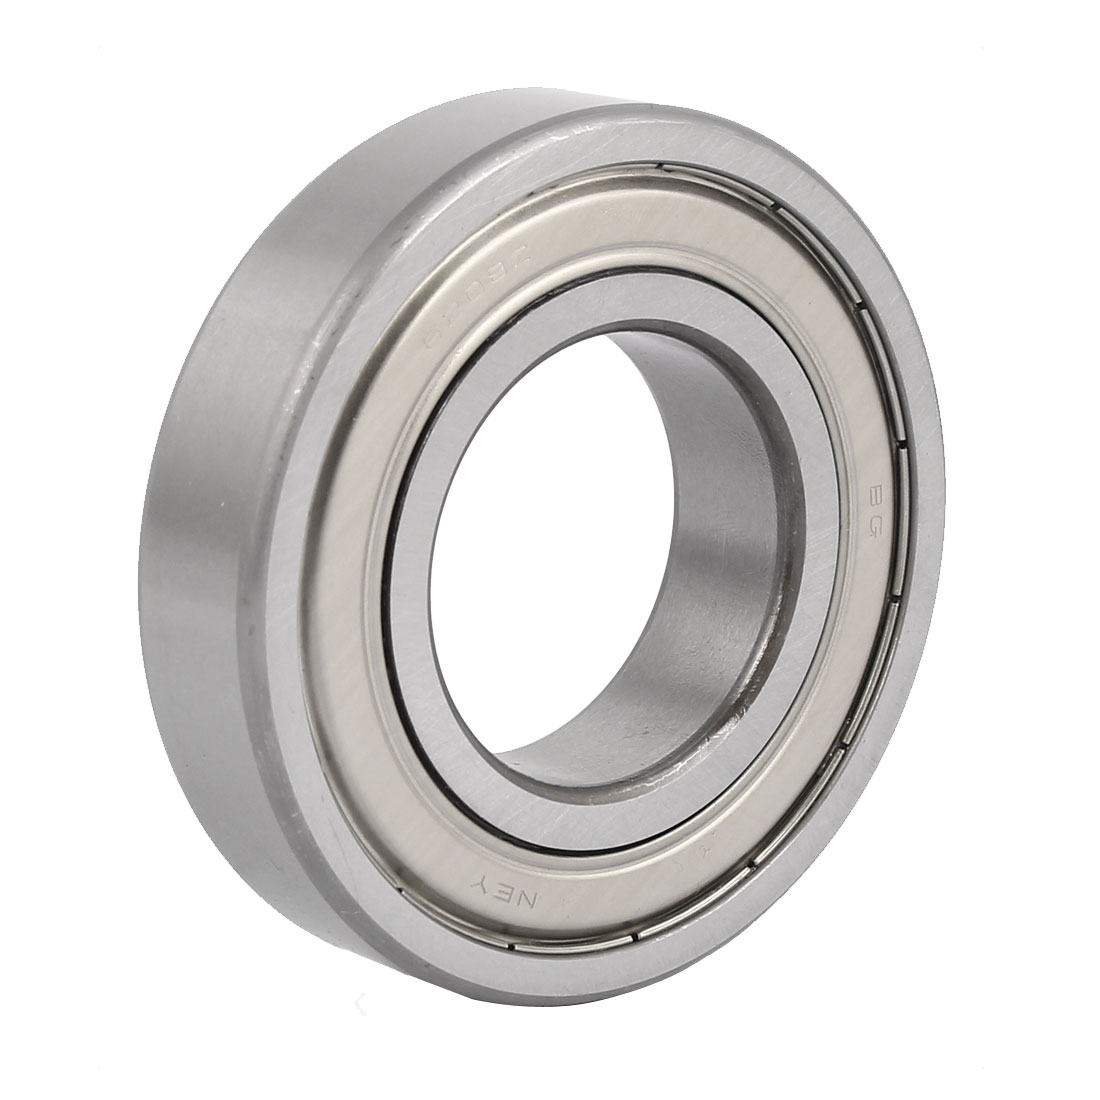 ZZ6210 Double Shielded Deep Groove Ball Bearing 90mmx50mmx20mm